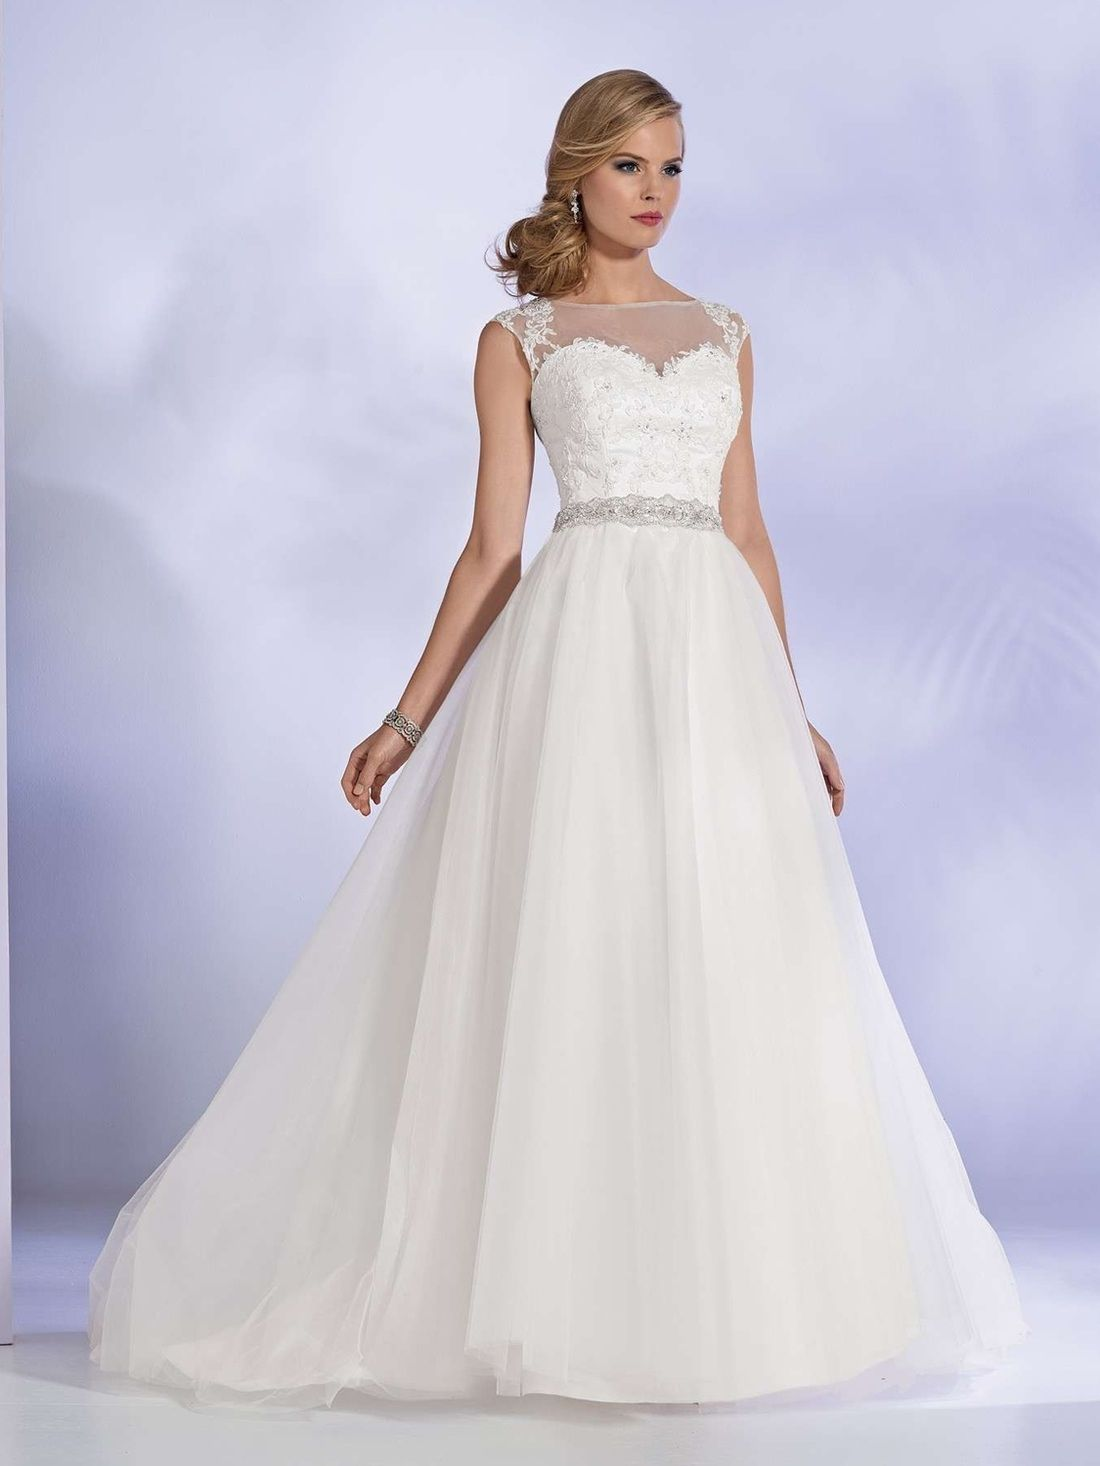 wedding dress under dress for country wedding guest check